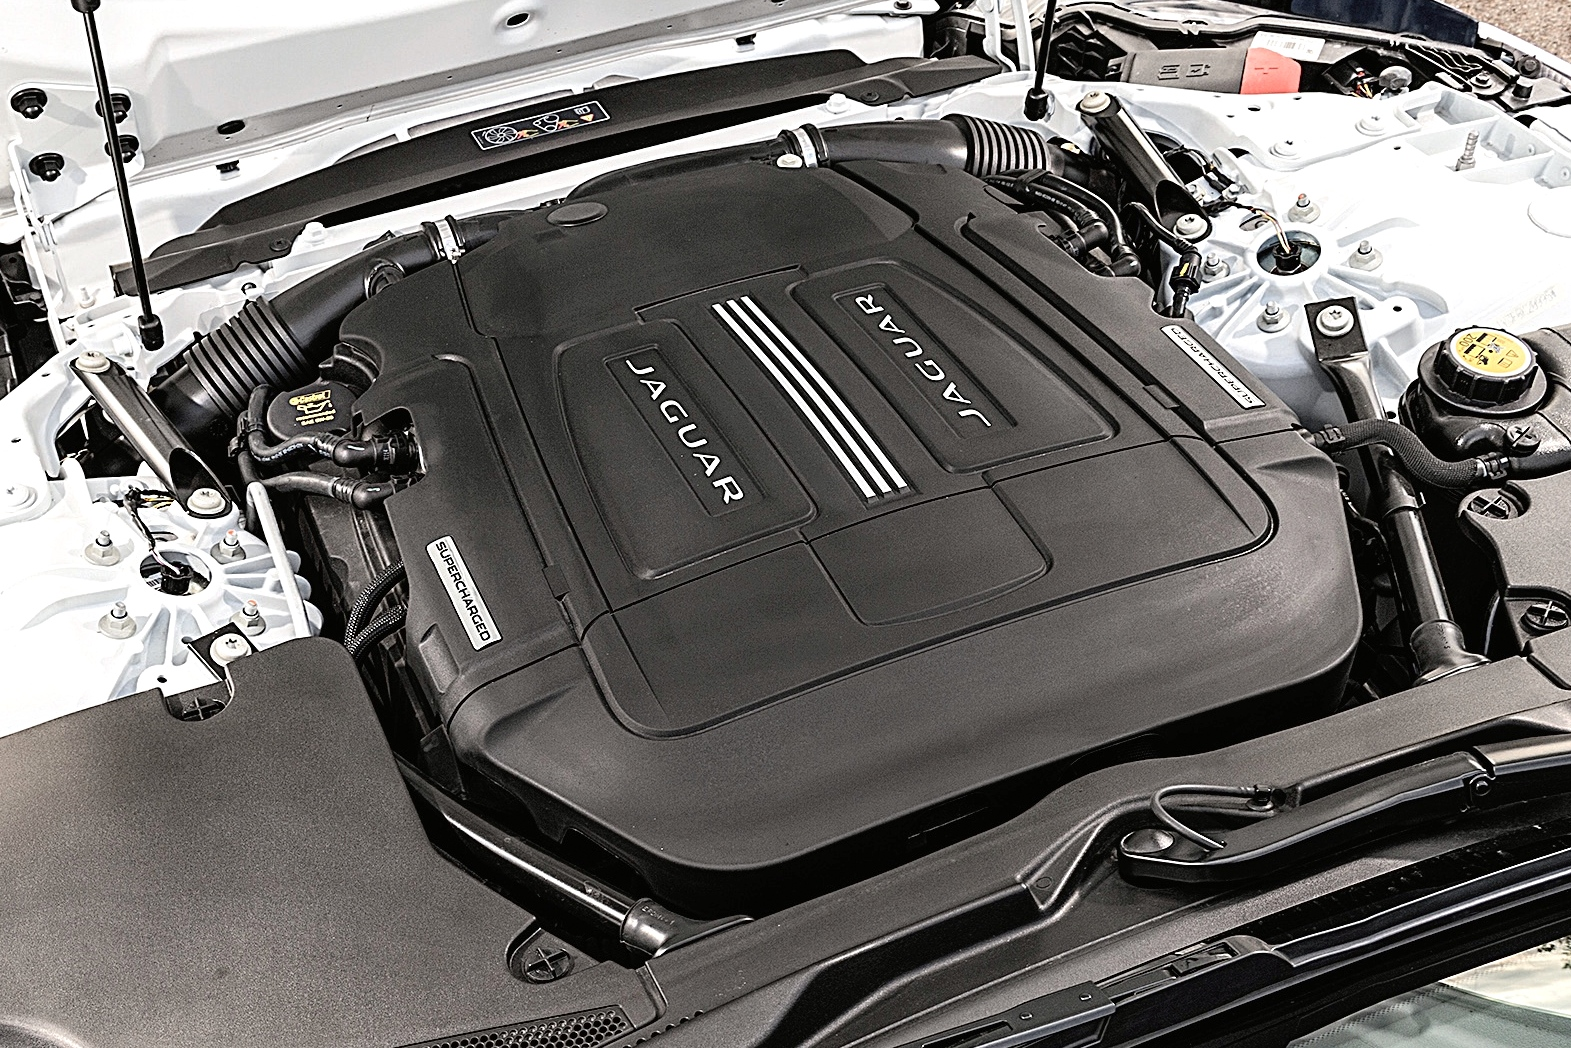 Motor V6 3.0 Supercharged do Jaguar F-Type